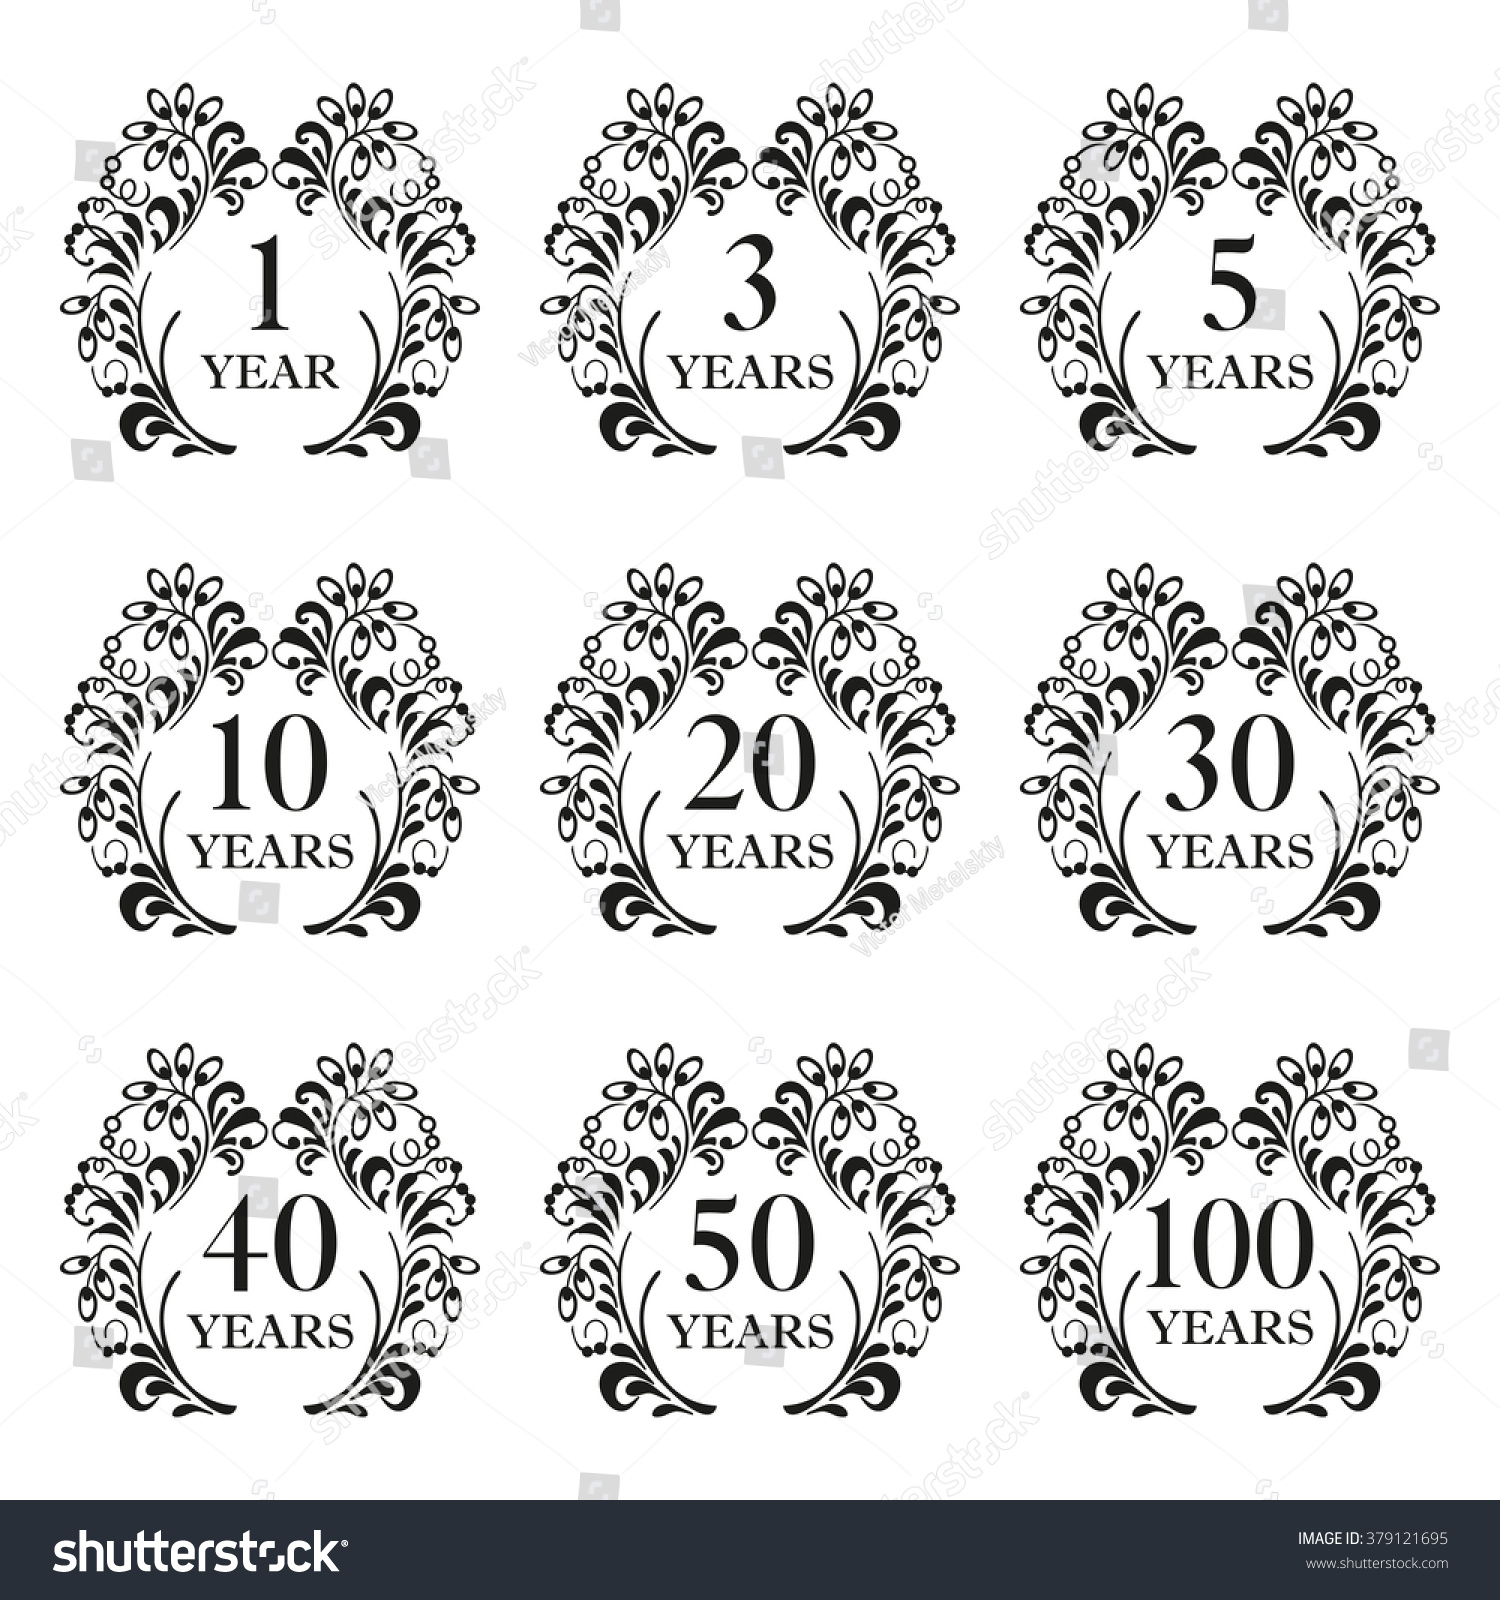 Anniversary icon set anniversary symbols ornate stock illustration anniversary symbols in ornate frame with floral elements 13 buycottarizona